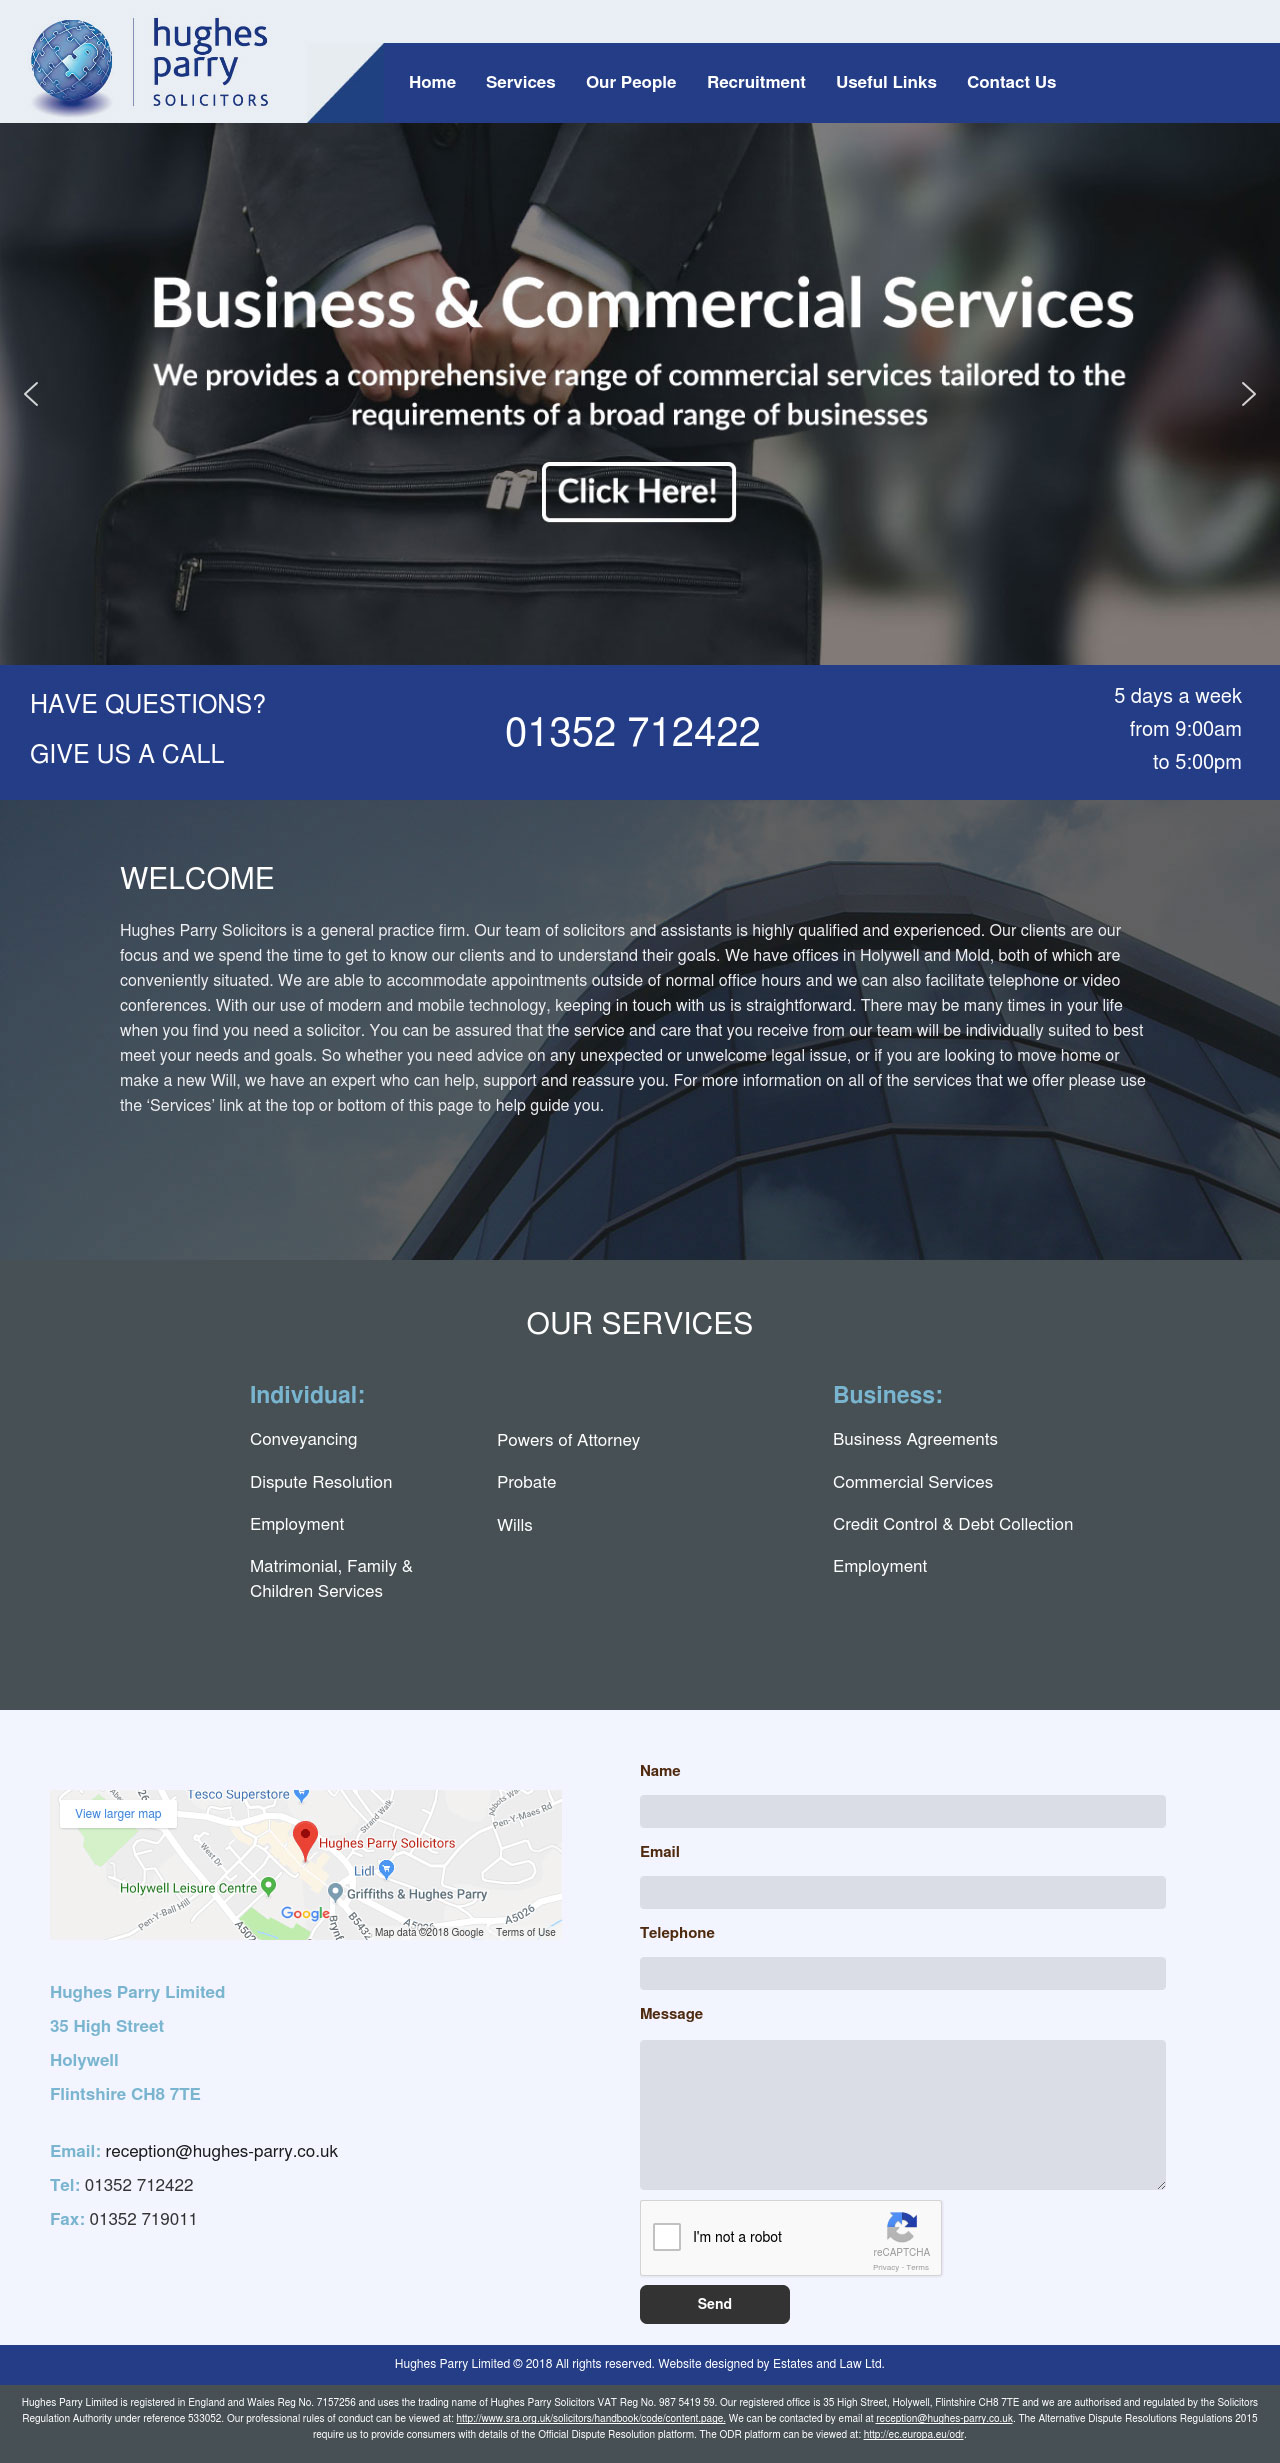 Hughes Parry Solicitors Website